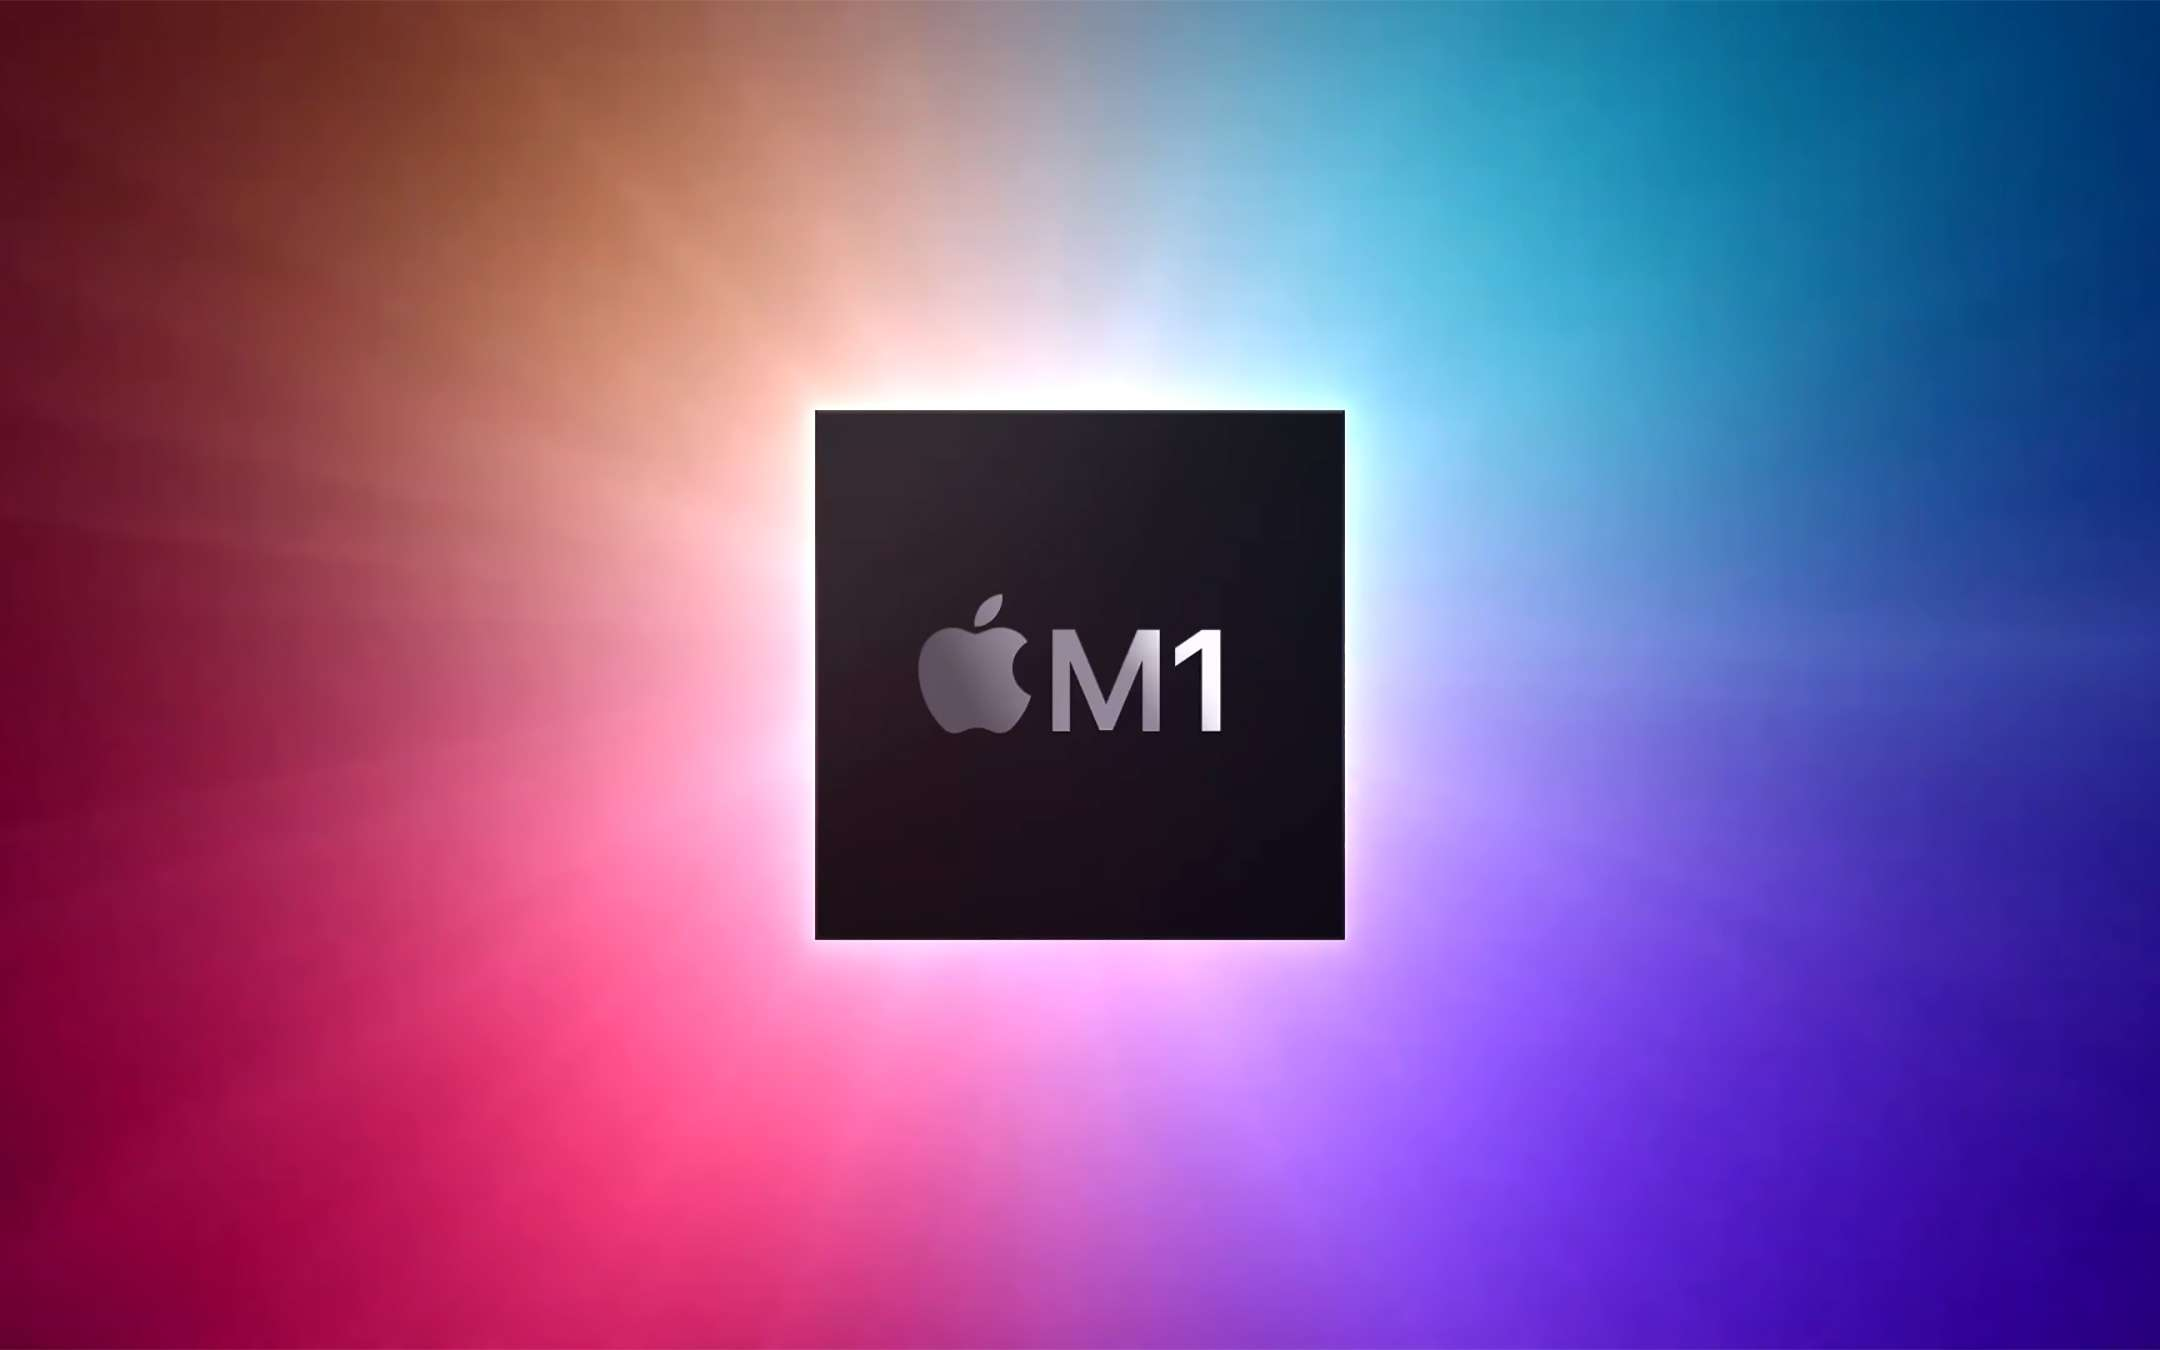 Apple presents in new ARM Macs with M1 chips